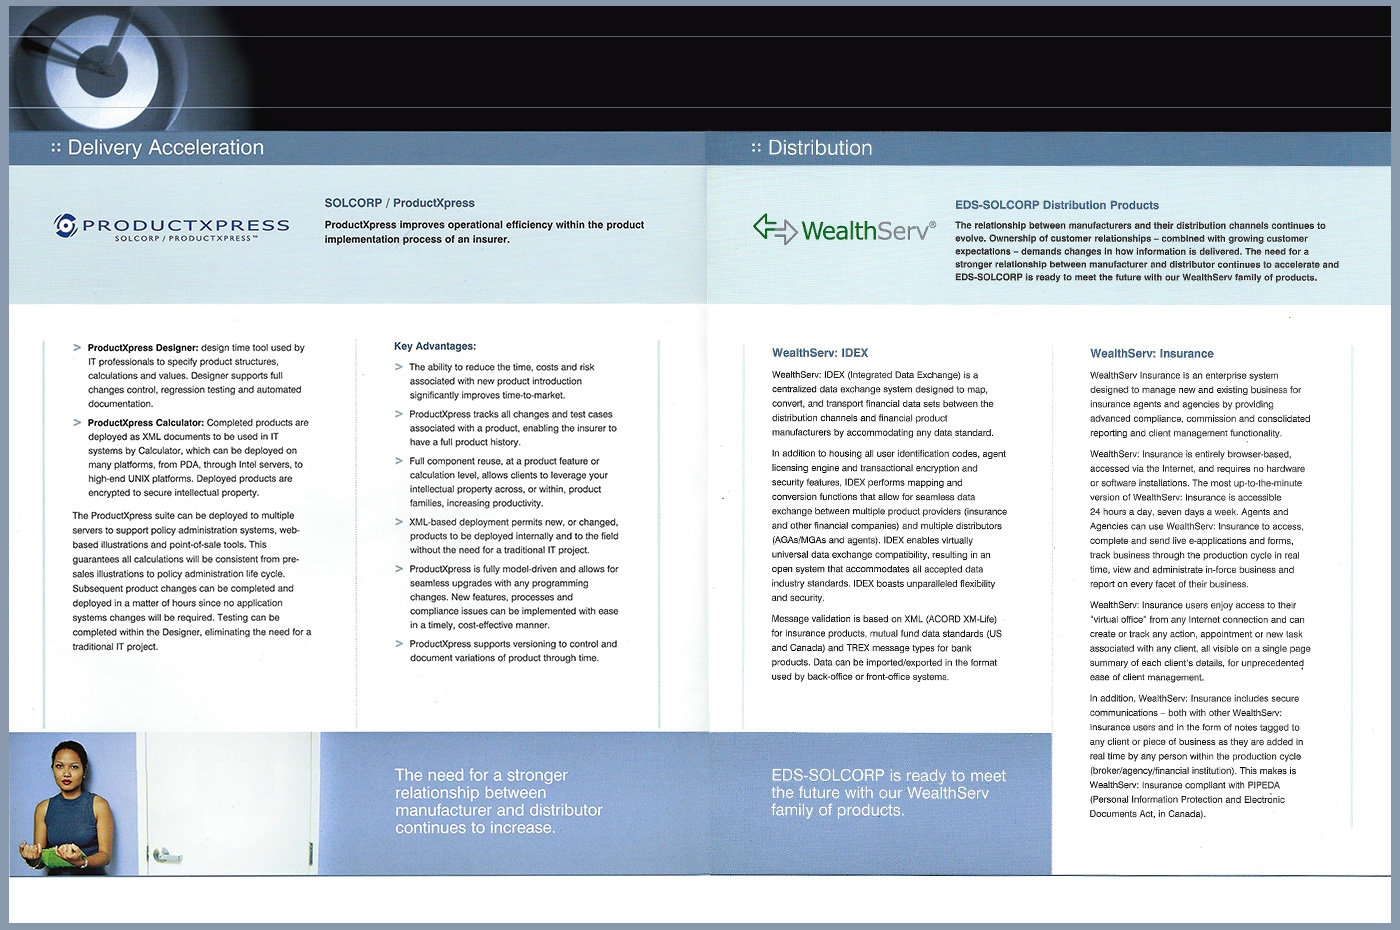 EDS-SOLCORP Solutions Offerings Brochure by Joe Gravel at Coroflot com